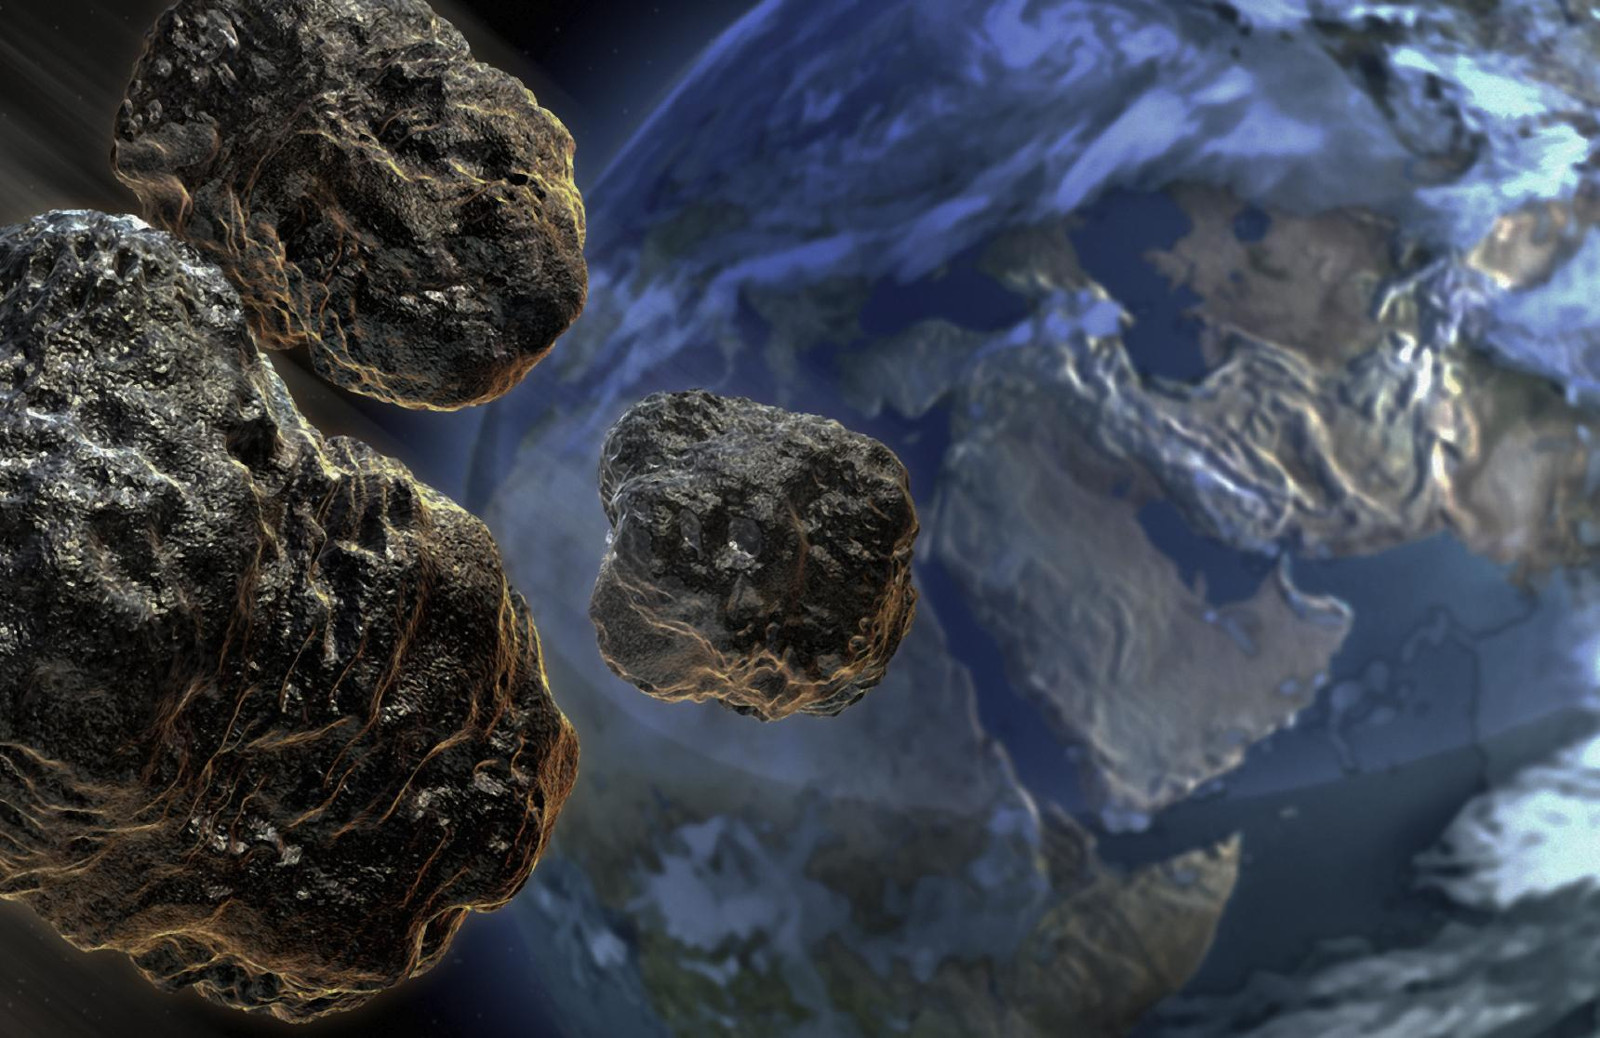 Could Impacts Jump-Start the Origin of Life?